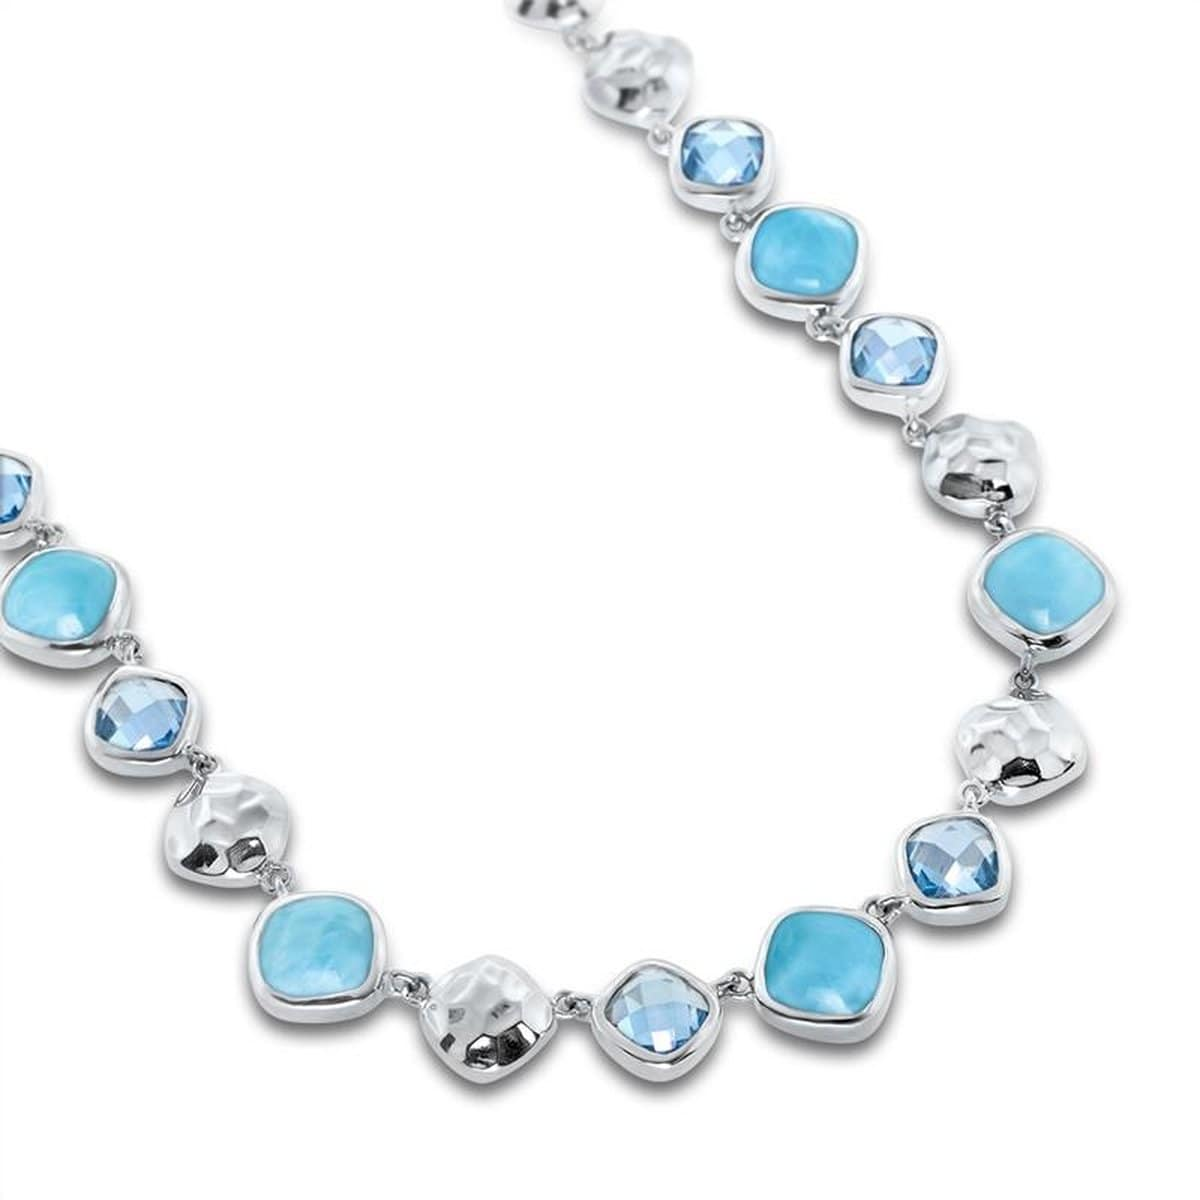 Faceta Necklace - Nface00-00-Marahlago Larimar-Renee Taylor Gallery